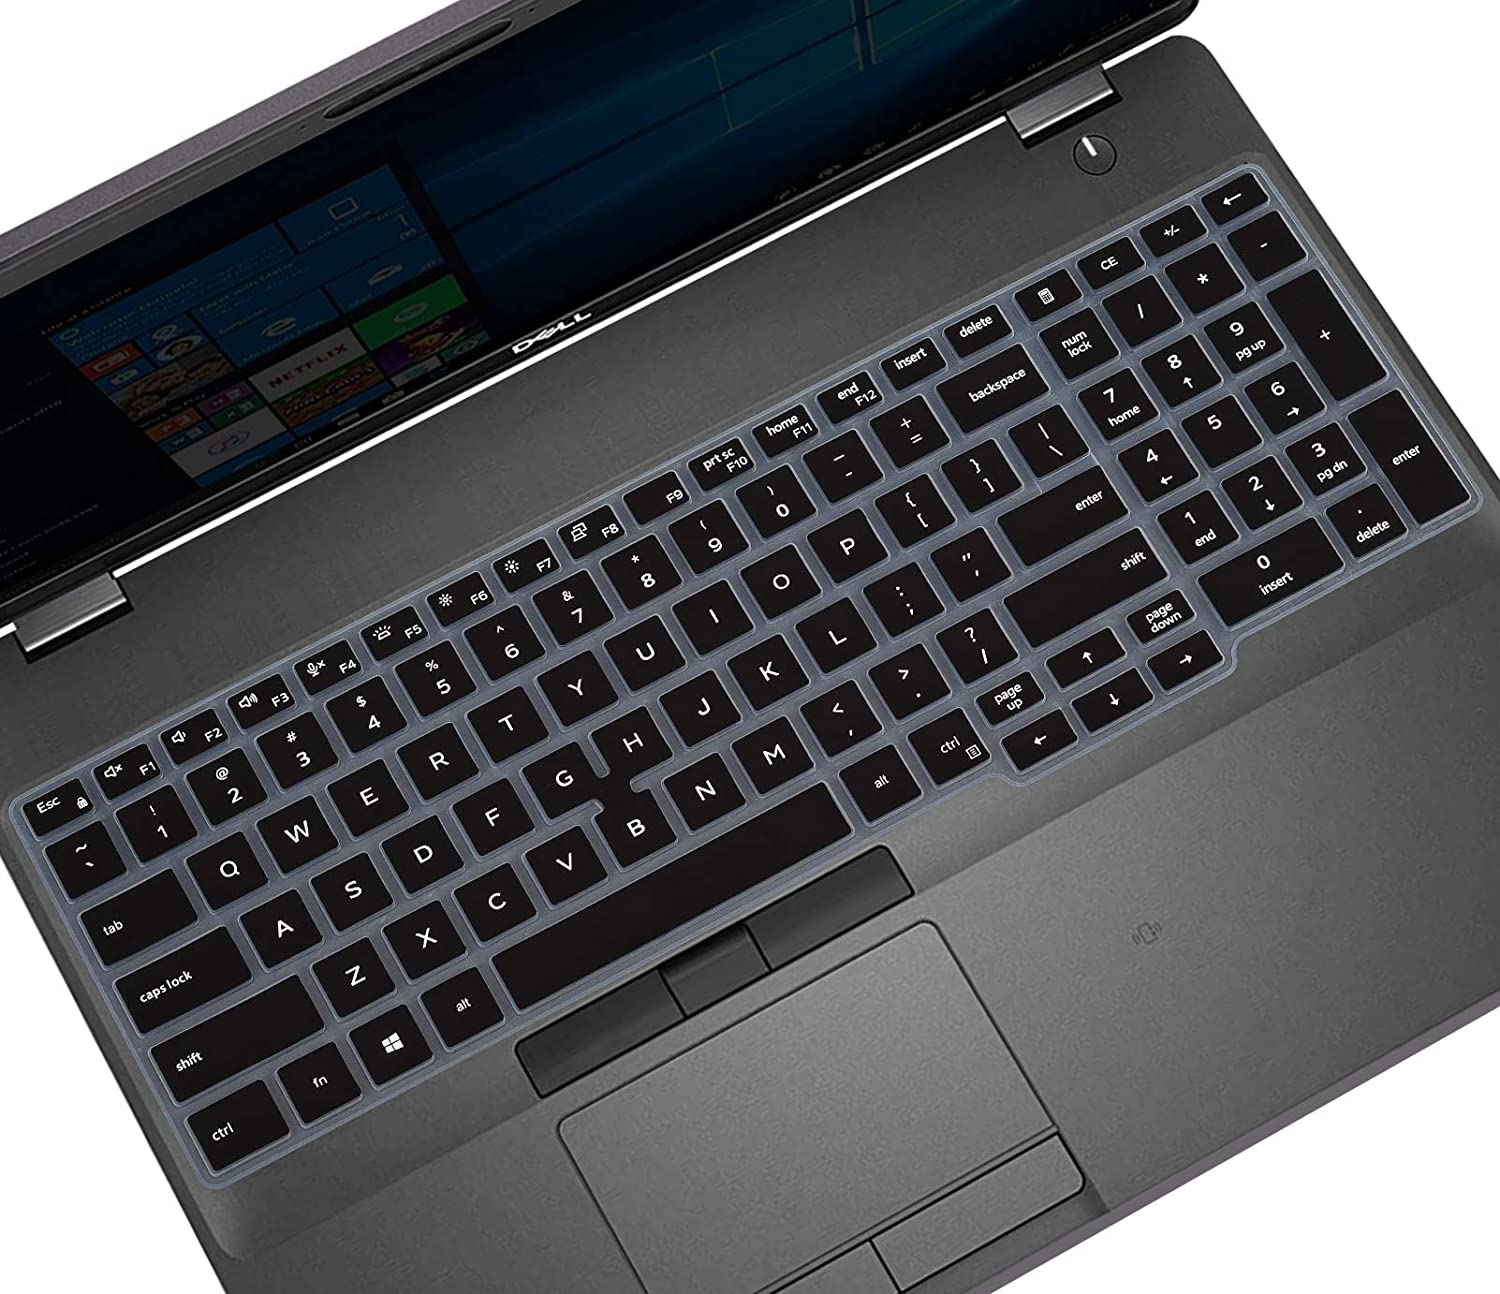 Keyboard Cover Skin for Dell Latitude 5500 5501 5510 5511 15.6 inch Laptop and Dell Precision 3540 3541 15.6